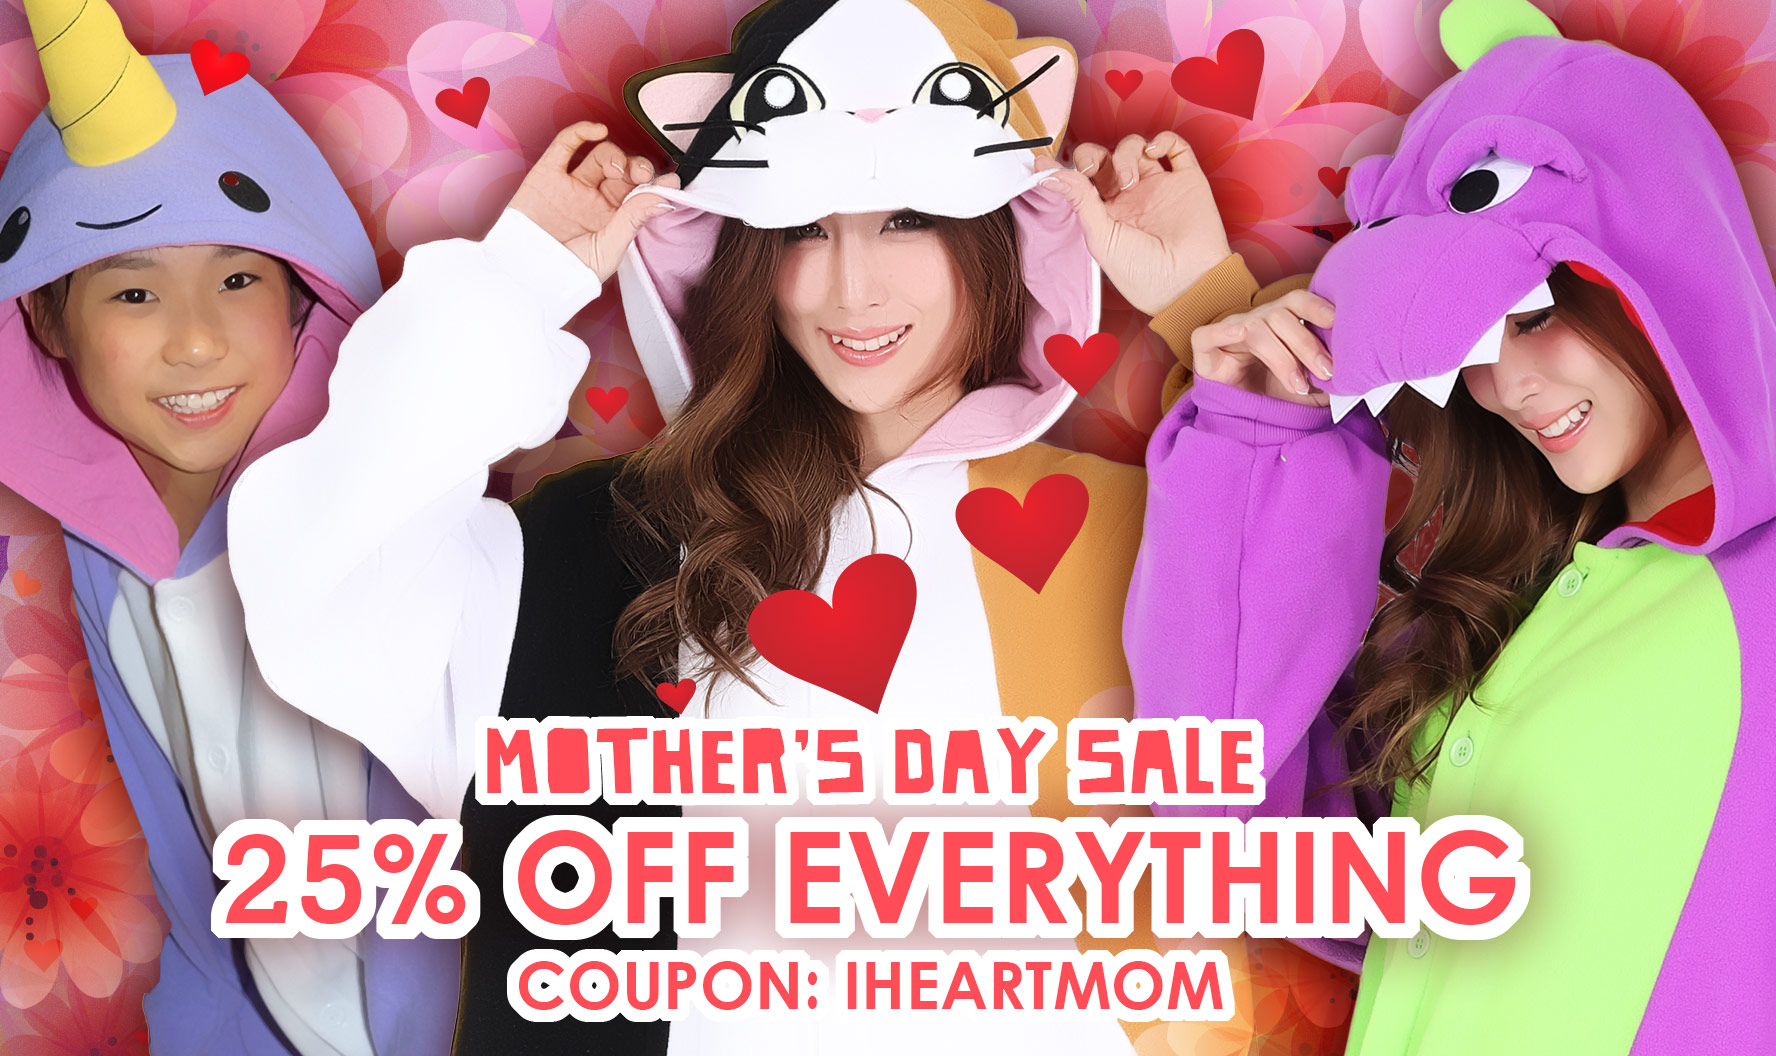 Kigurumi Shop Mother's Day Sale